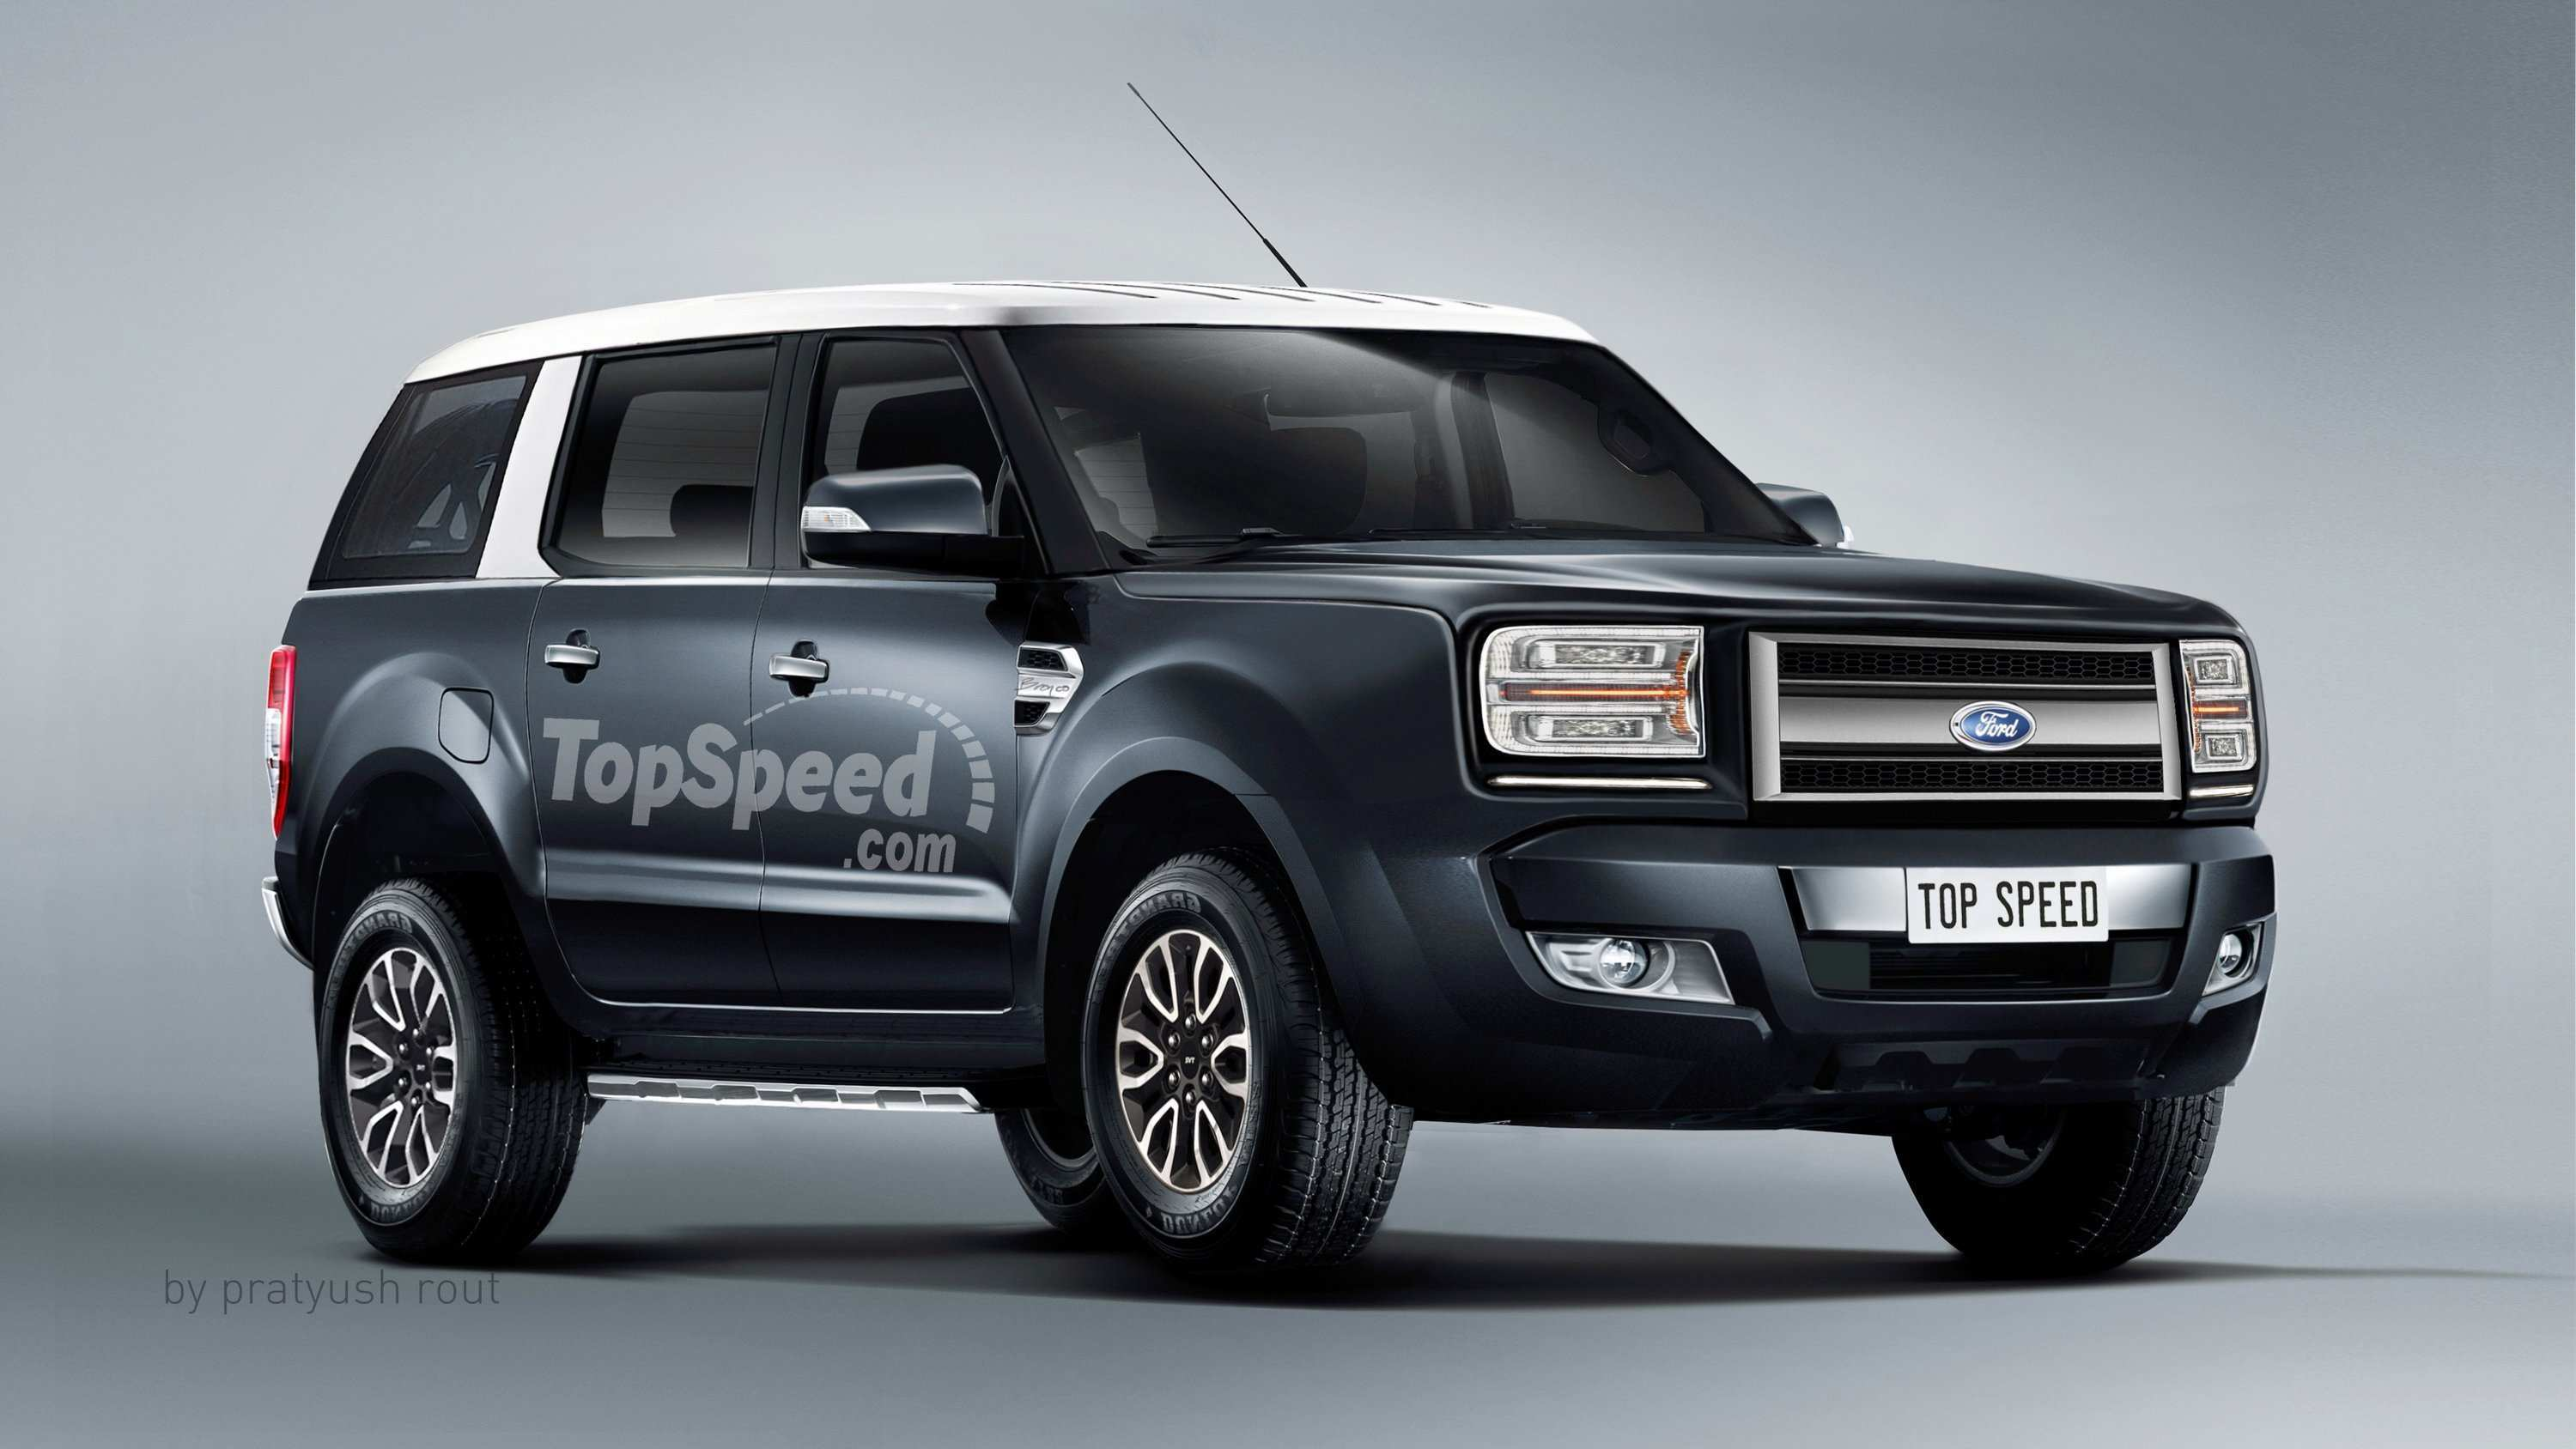 48 Concept of 2020 Ford Svt Bronco Raptor Redesign and Concept with 2020 Ford Svt Bronco Raptor